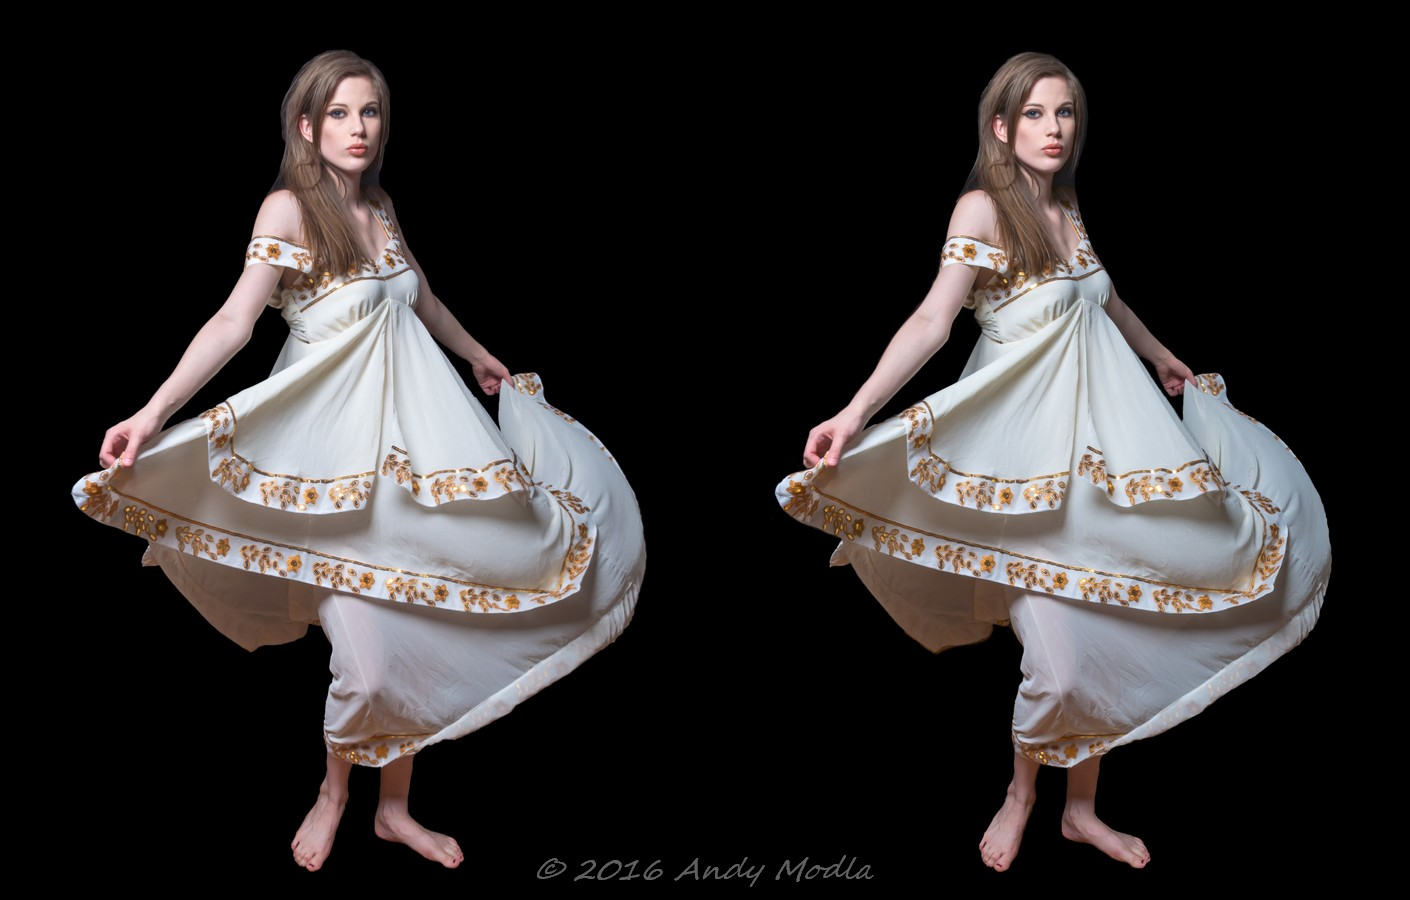 Andy Modla Photography Autostereogram 3d Art